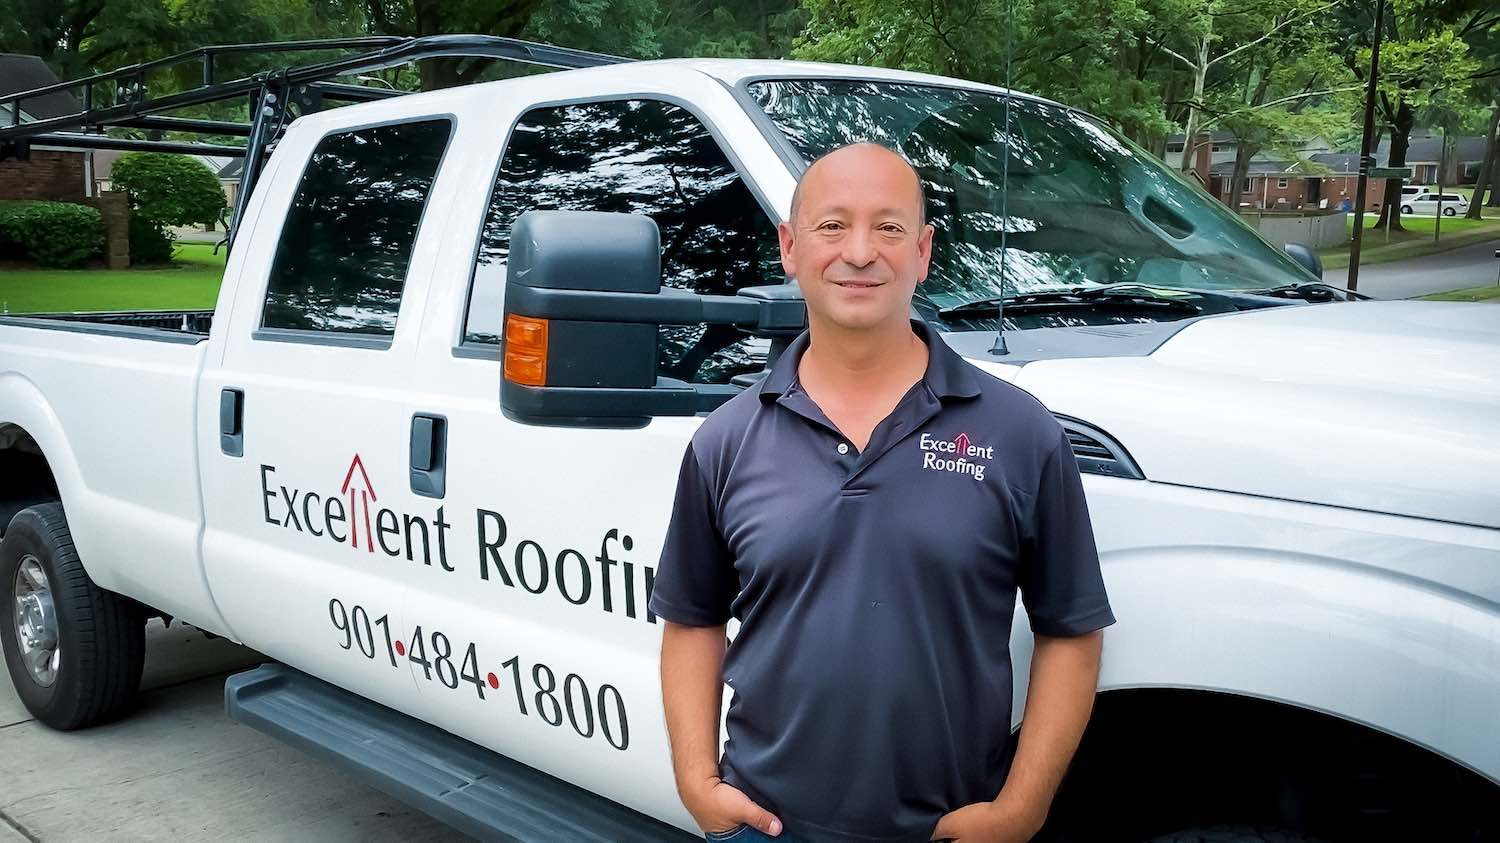 owner of excellent roofing in memphis, tn is john bennett